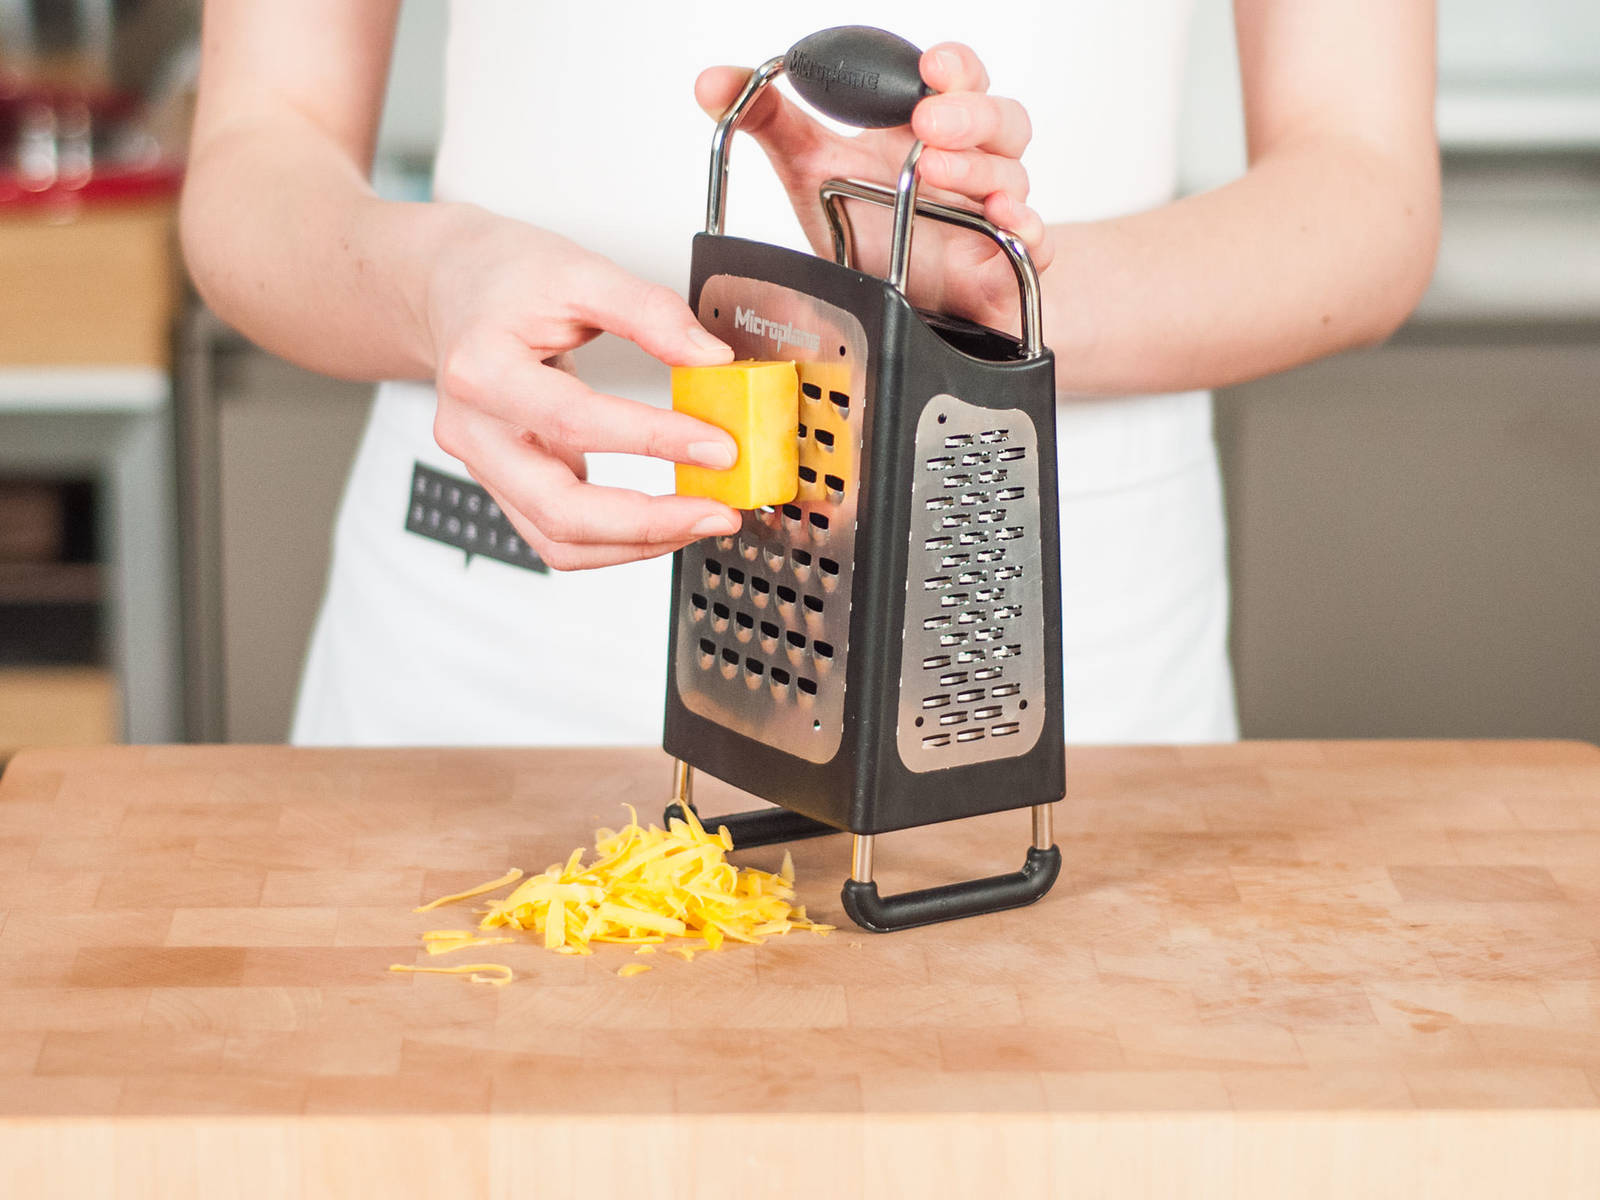 Preheat the oven to 180°C/350°F. Roughly grate cheese using a box grater.